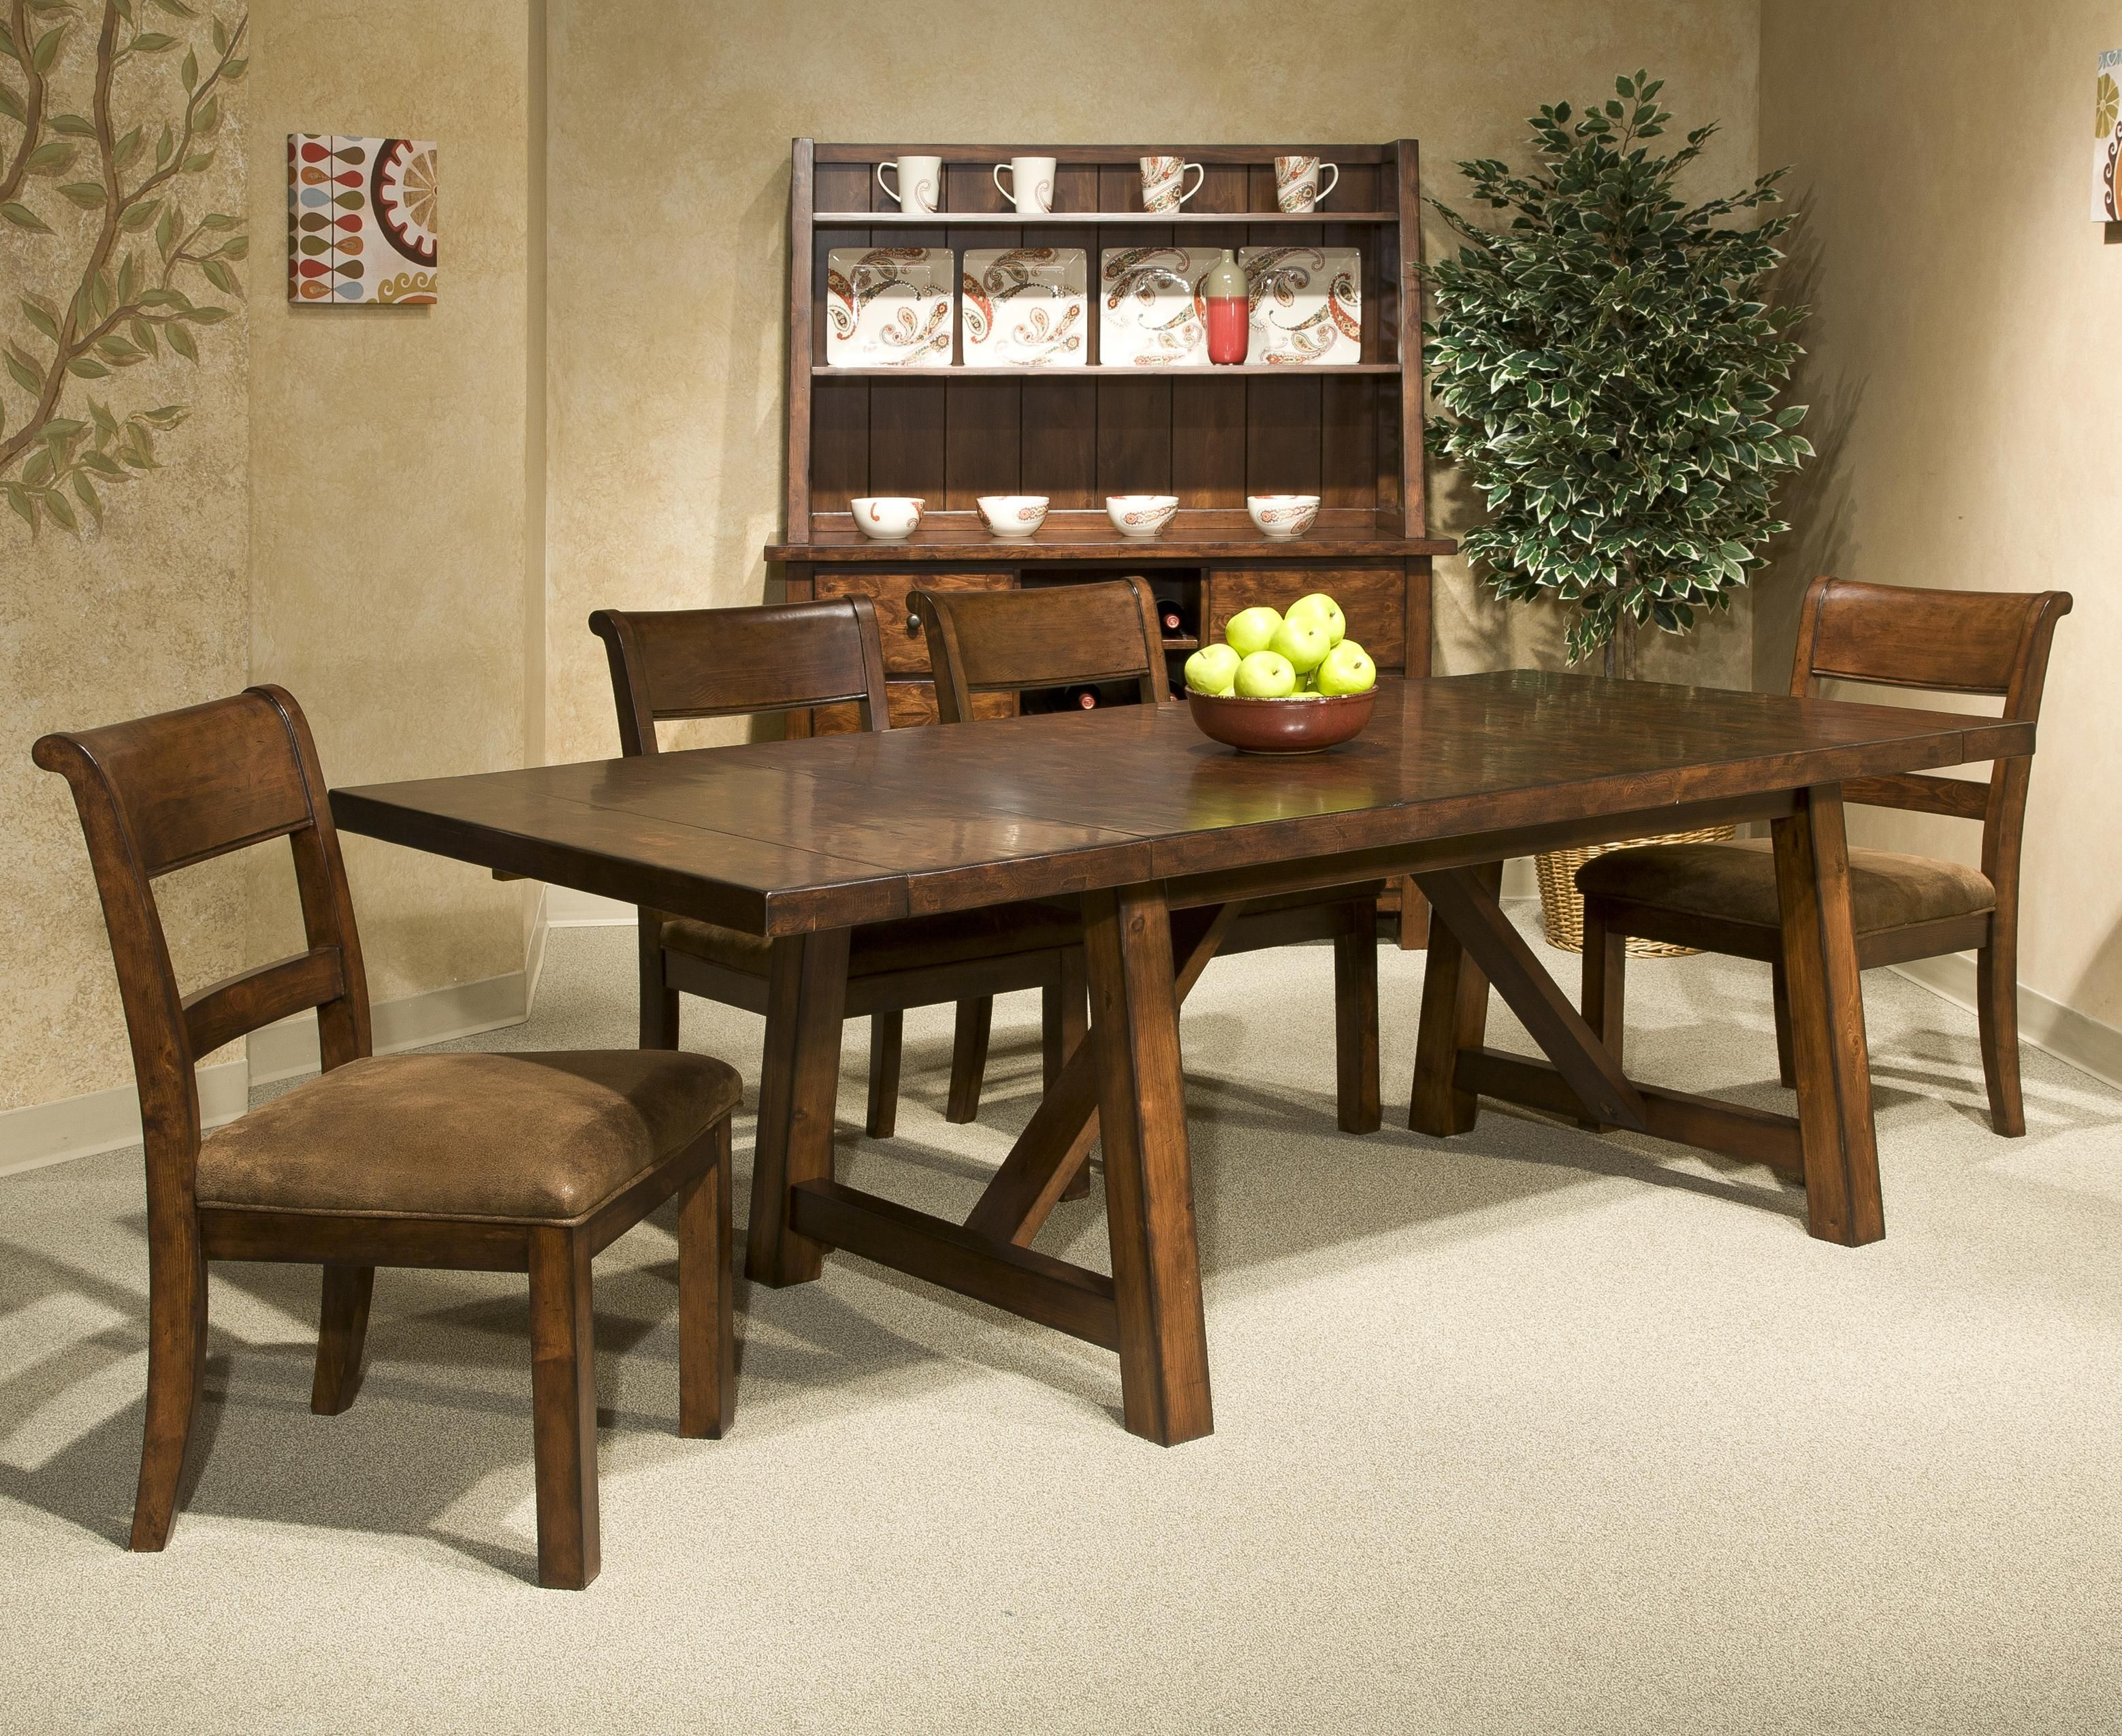 Pennsylvania House Dining Room Table Bench Creek 5 Piece Trestle Table Upholstered Chairs Dining Set